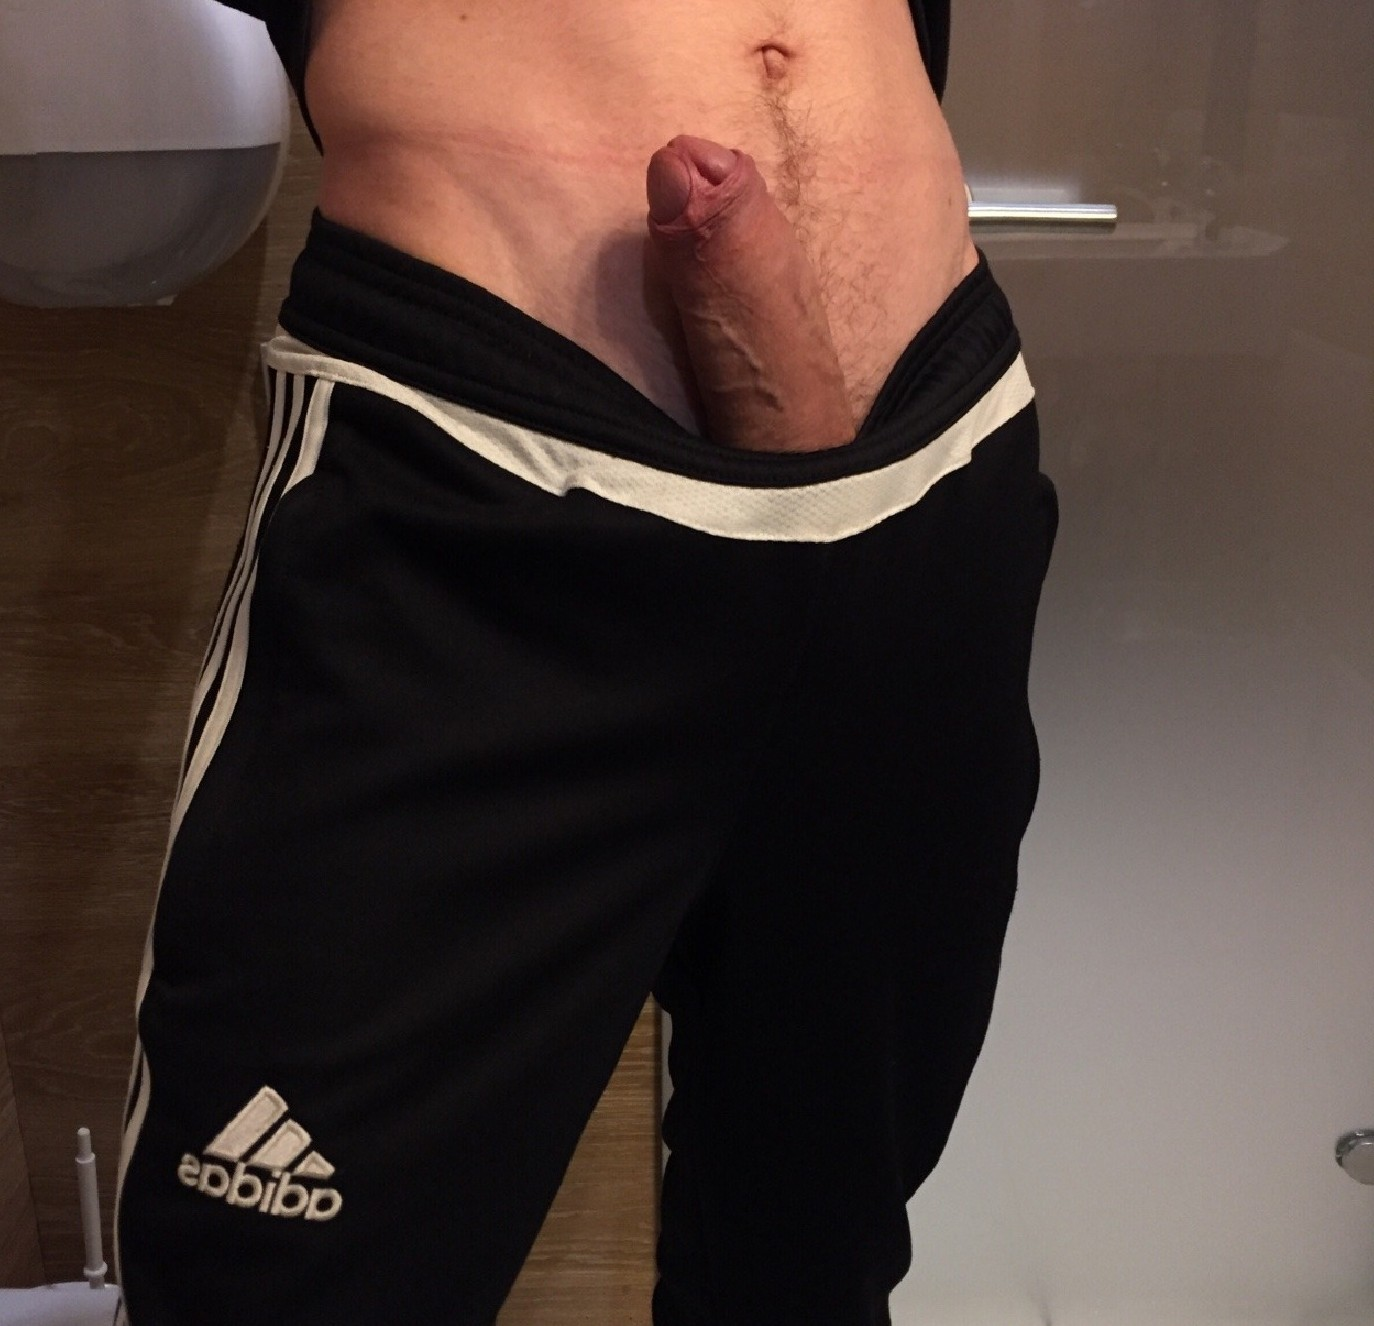 Cock Sticking Out